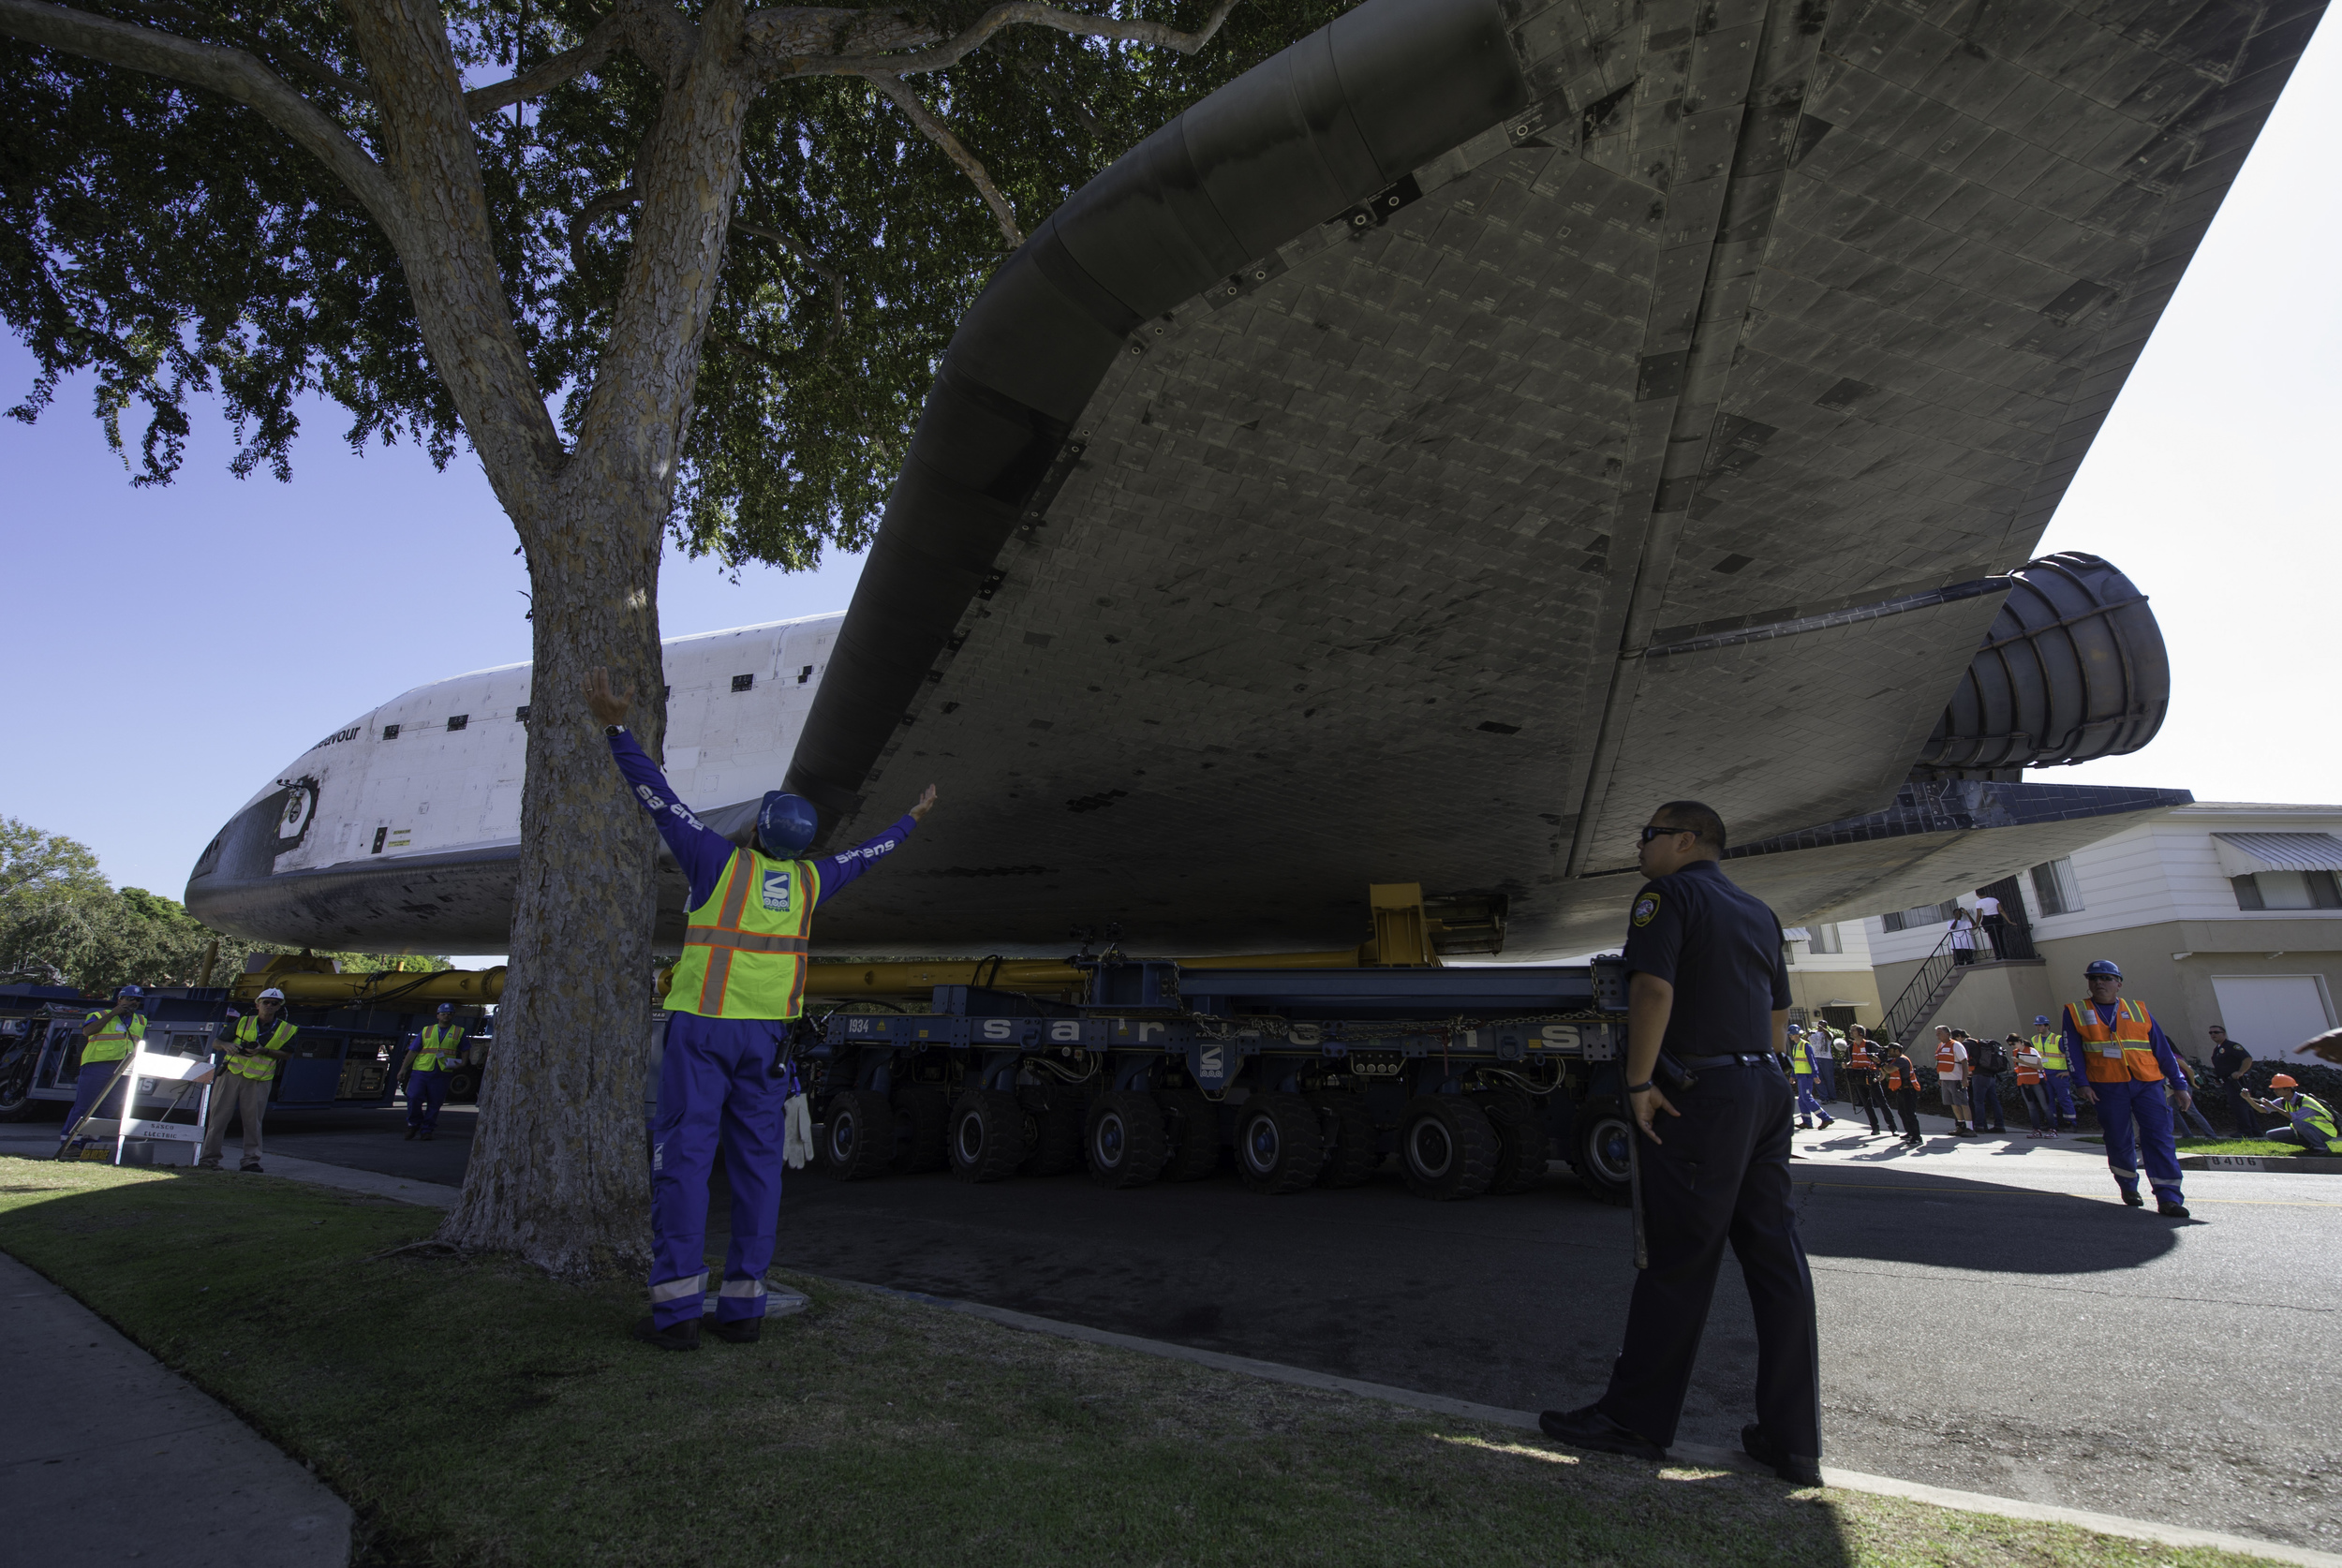 A technician for the Over Land Transporter (OLT) carrying the space shuttle Endeavour signals how much room is available between a tree and the orbiter's wing, Saturday, Oct. 13, 2012, as it maneuvers its way through the streets of Inglewood, Calif. Endeavour, built as a replacement for space shuttle Challenger, completed 25 missions, spent 299 days in orbit, and orbited Earth 4,671 times while traveling 122,883,151 miles. Beginning Oct. 30, the shuttle will be on display in the CSC's Samuel Oschin Space Shuttle Endeavour Display Pavilion, embarking on its new mission to commemorate past achievements in space and educate and inspire future generations of explorers. (NASA/Carla Cioffi)